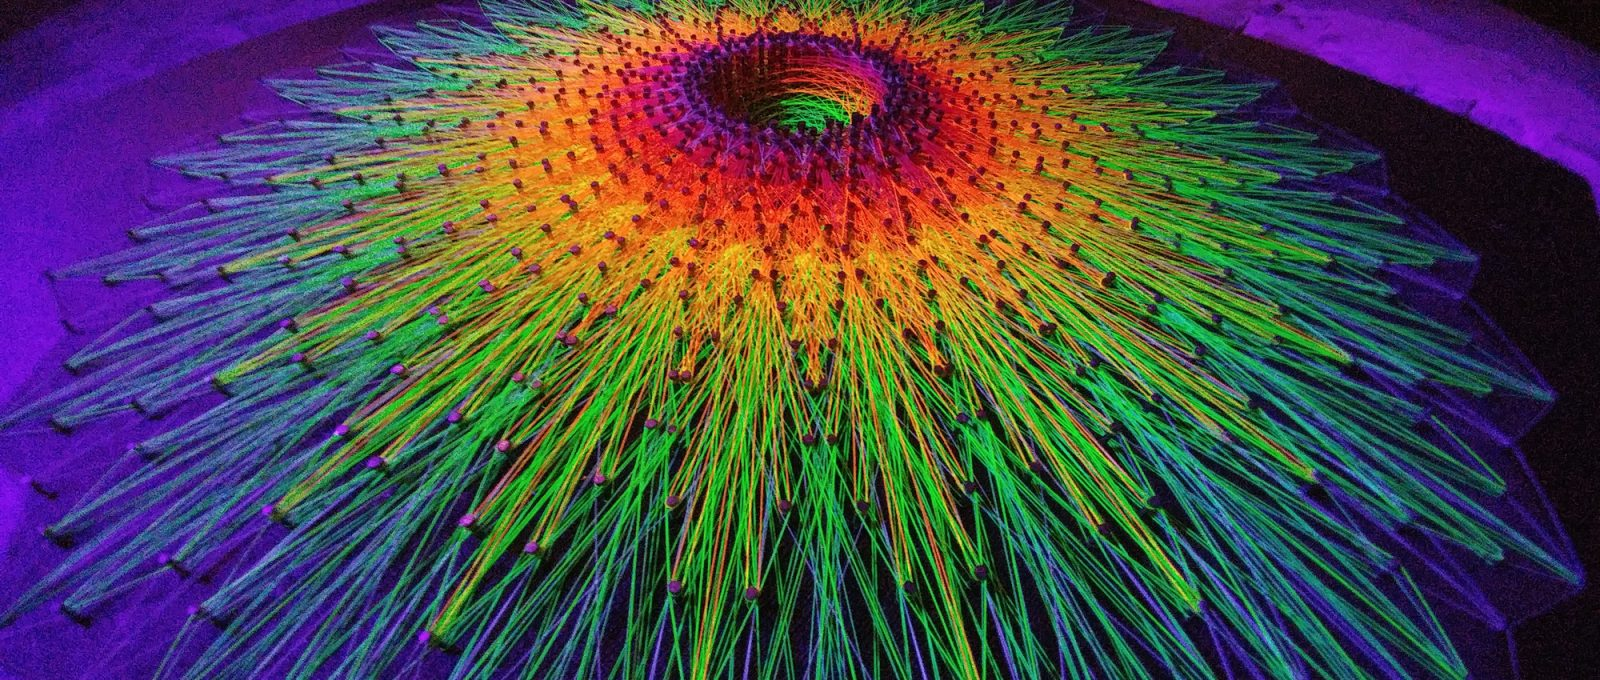 DecodeTheCode, String Art and installations made of wires and ultraviolet light